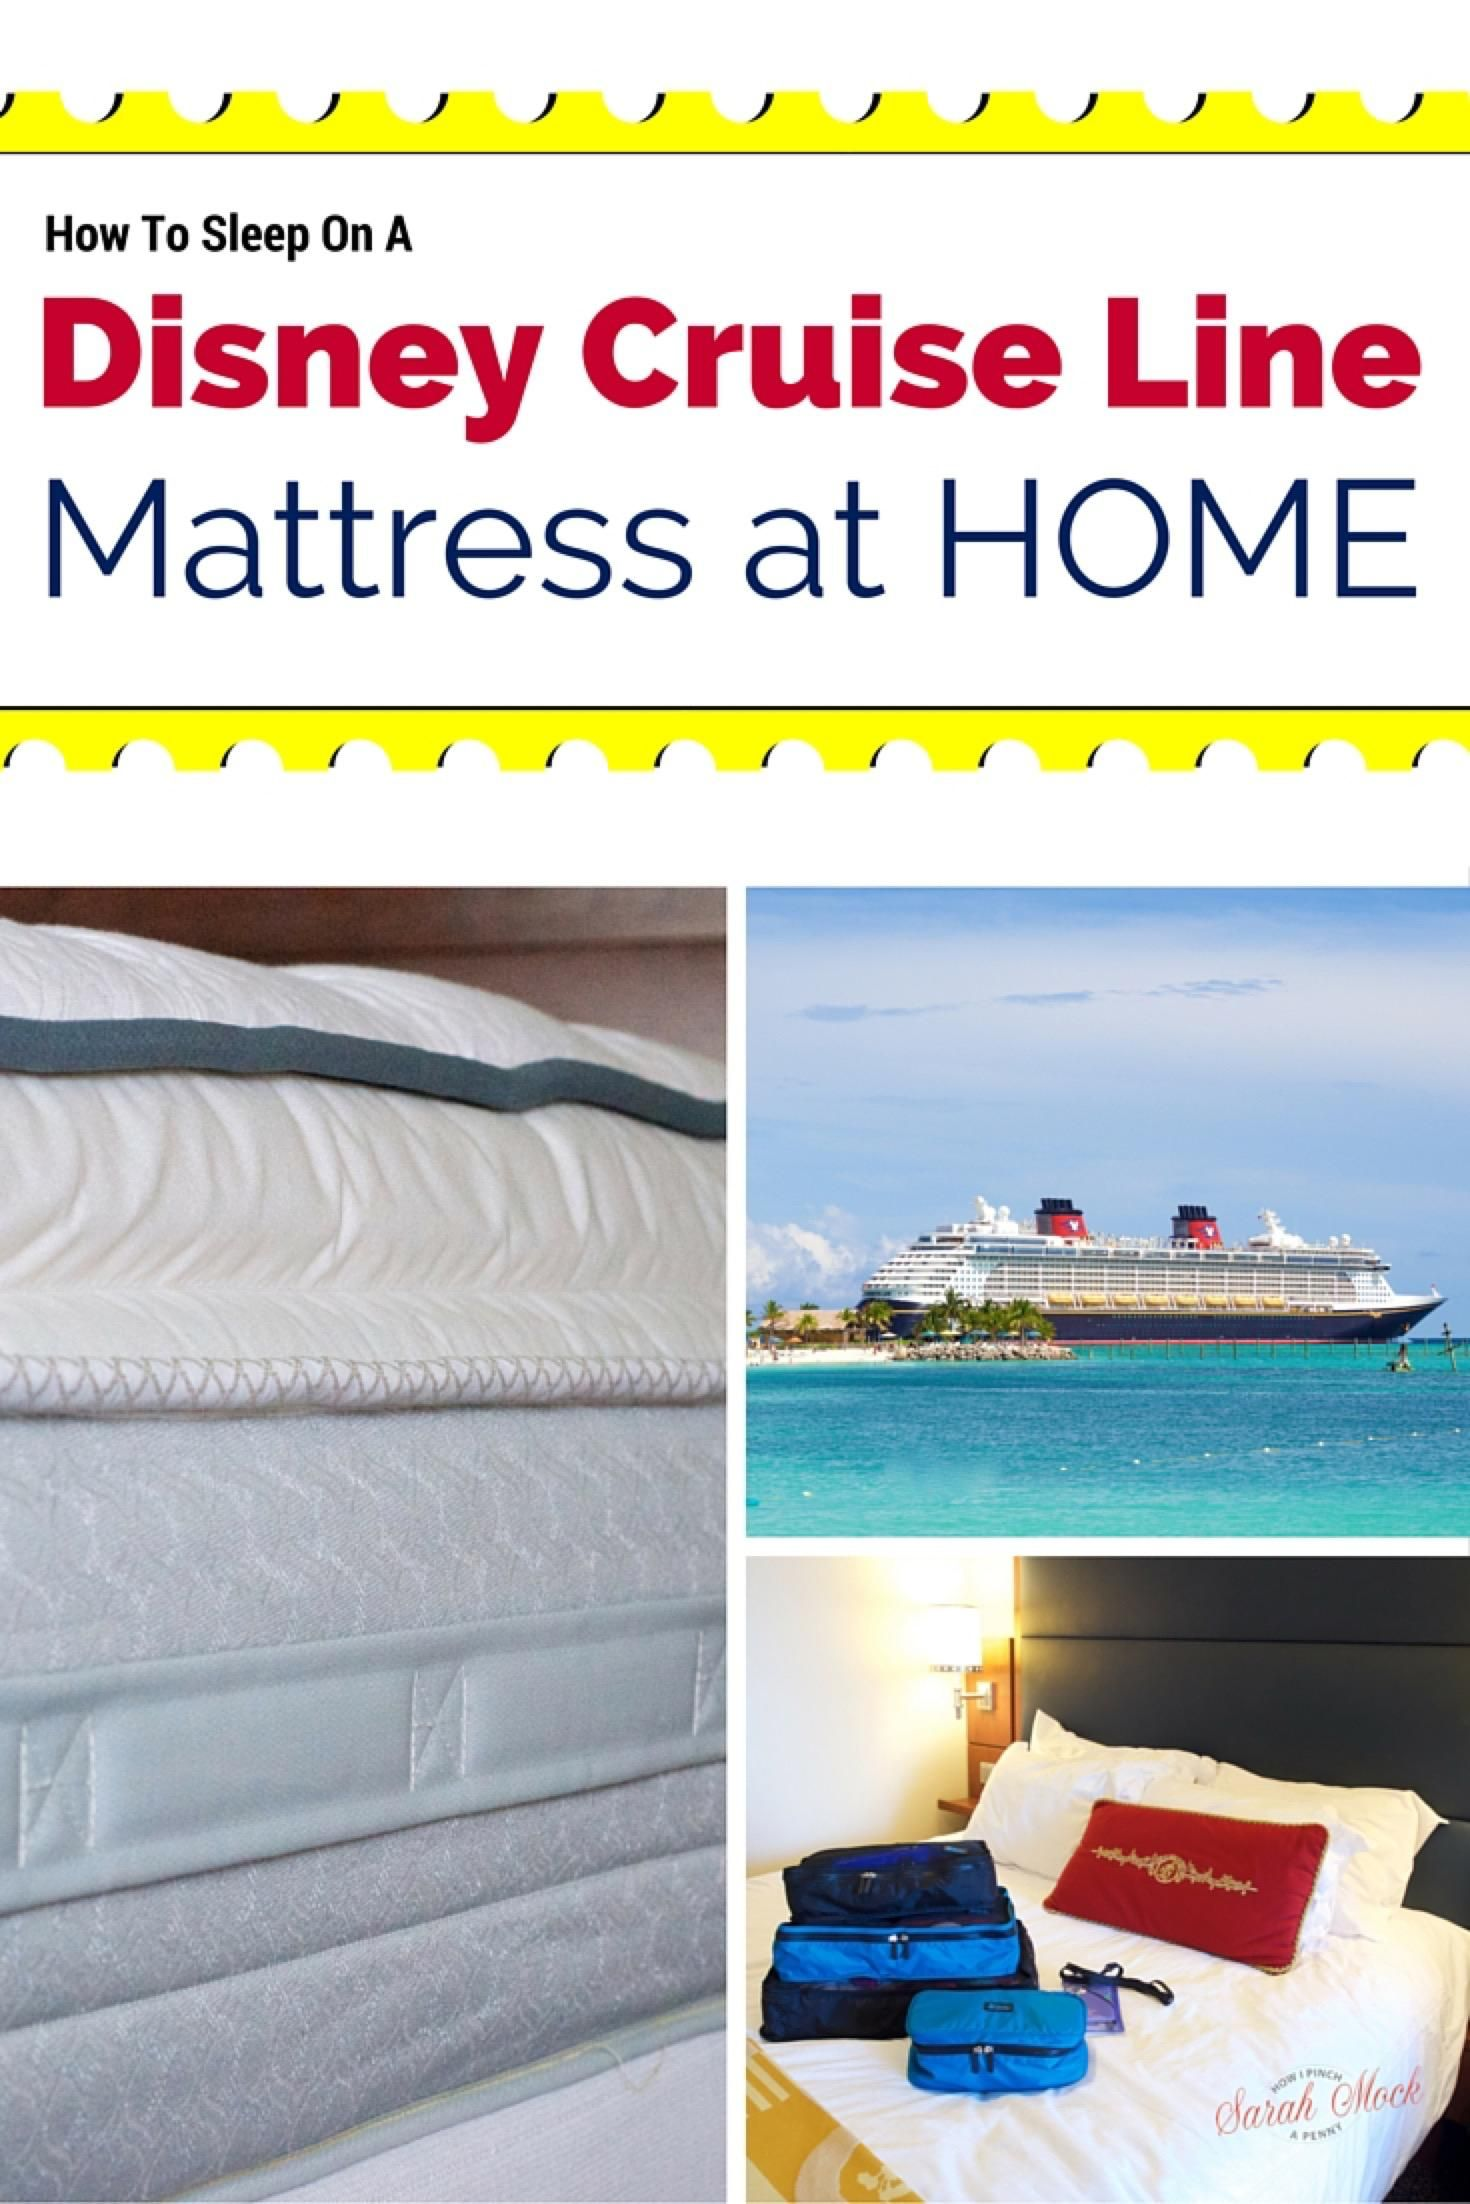 how to sleep on a disney cruise line mattress at home i have to